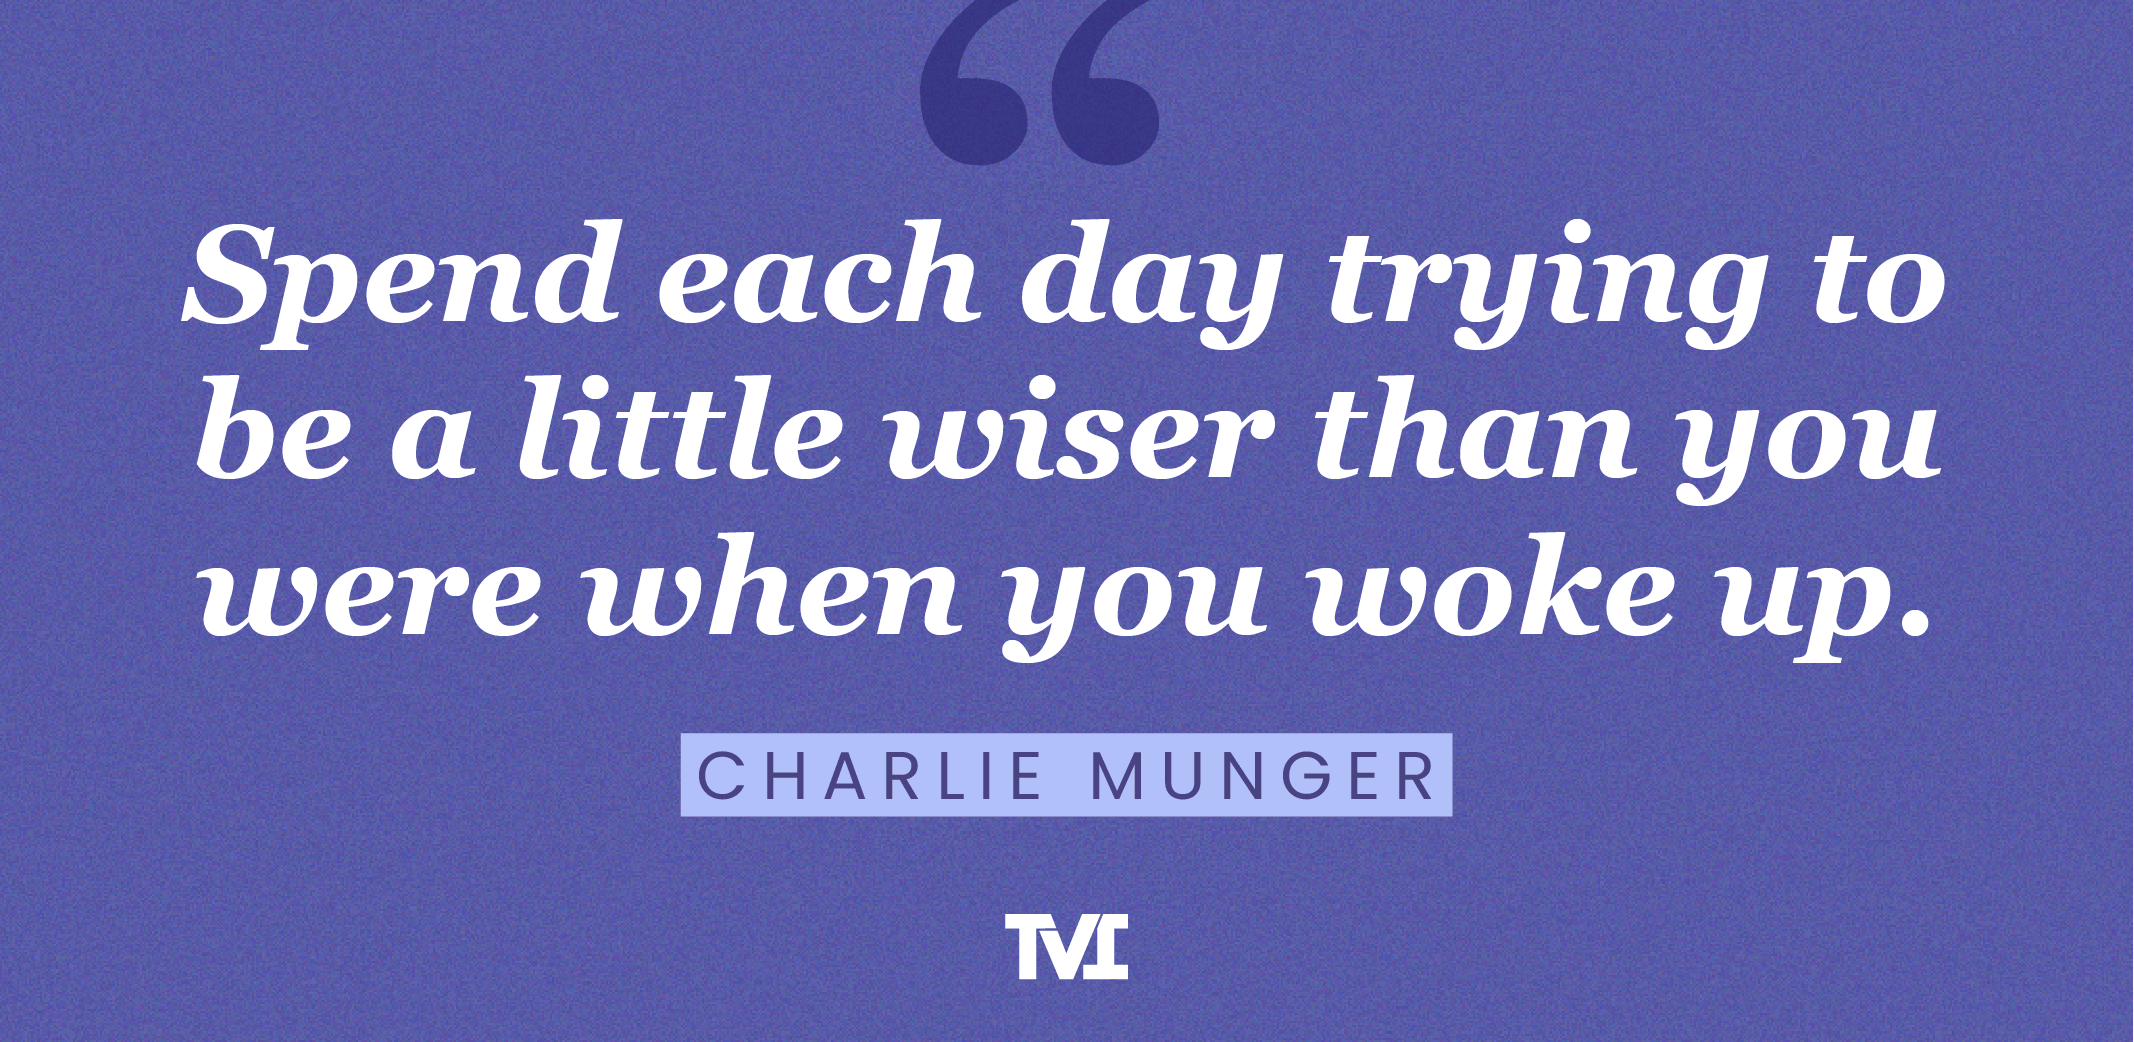 """""""Spend each day trying to be a little wiser than you were when you woke up."""" —Charlie Munger"""